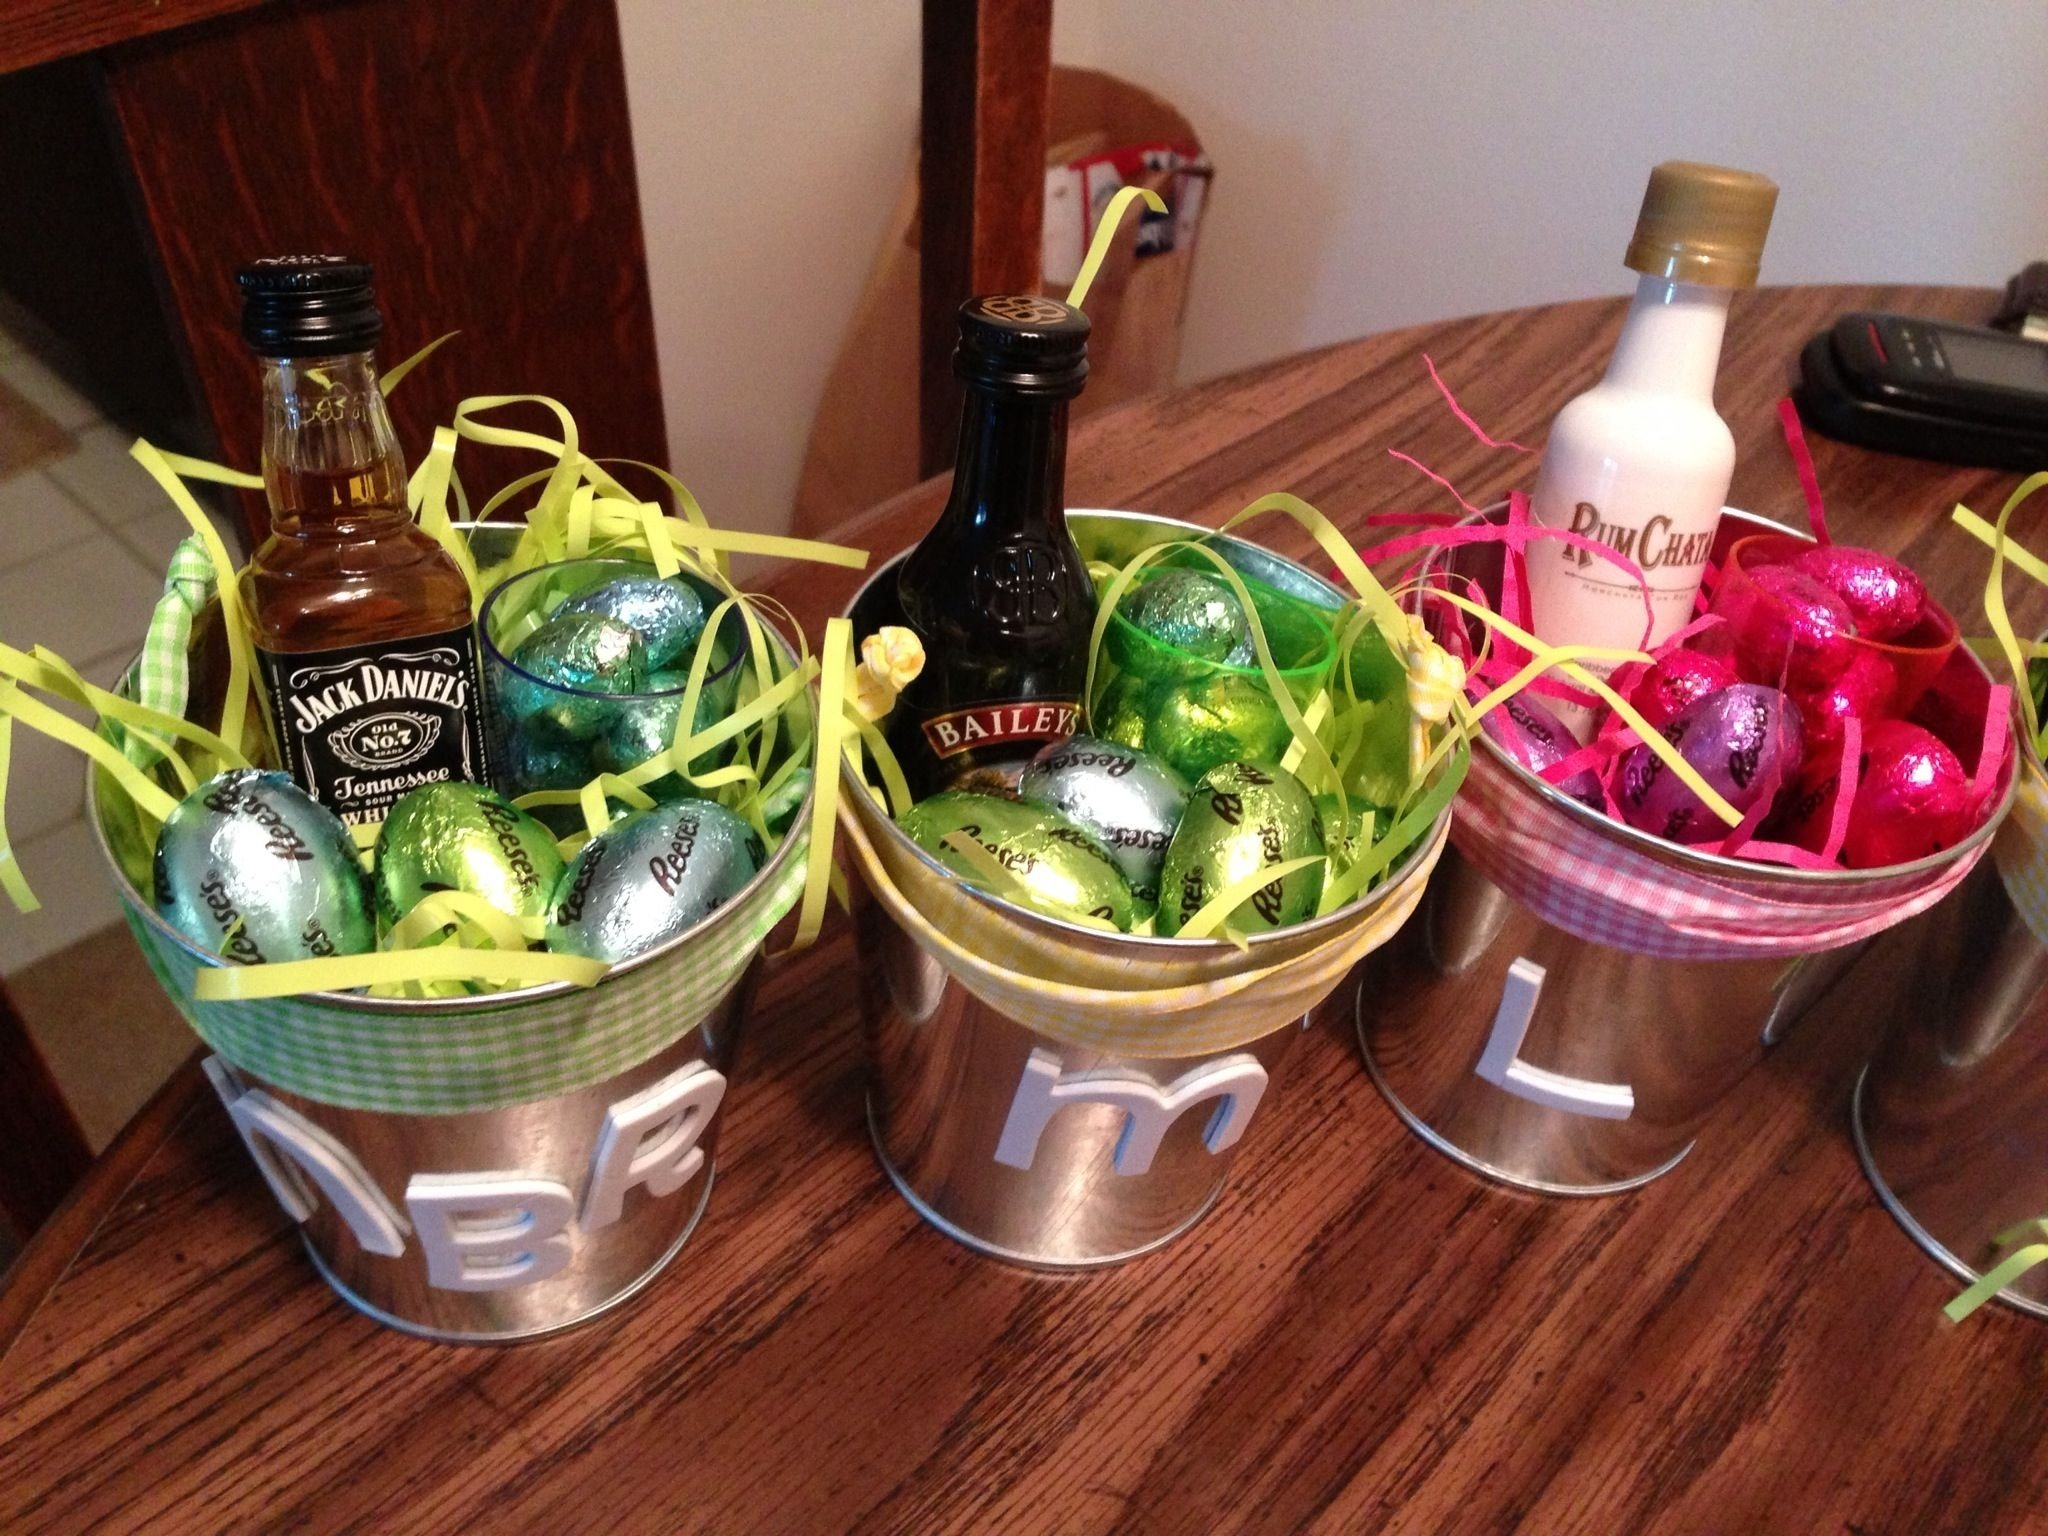 10 Beautiful Easter Baskets Ideas For Adults adult easter baskets favorite booze shot glass and chocolate 2020